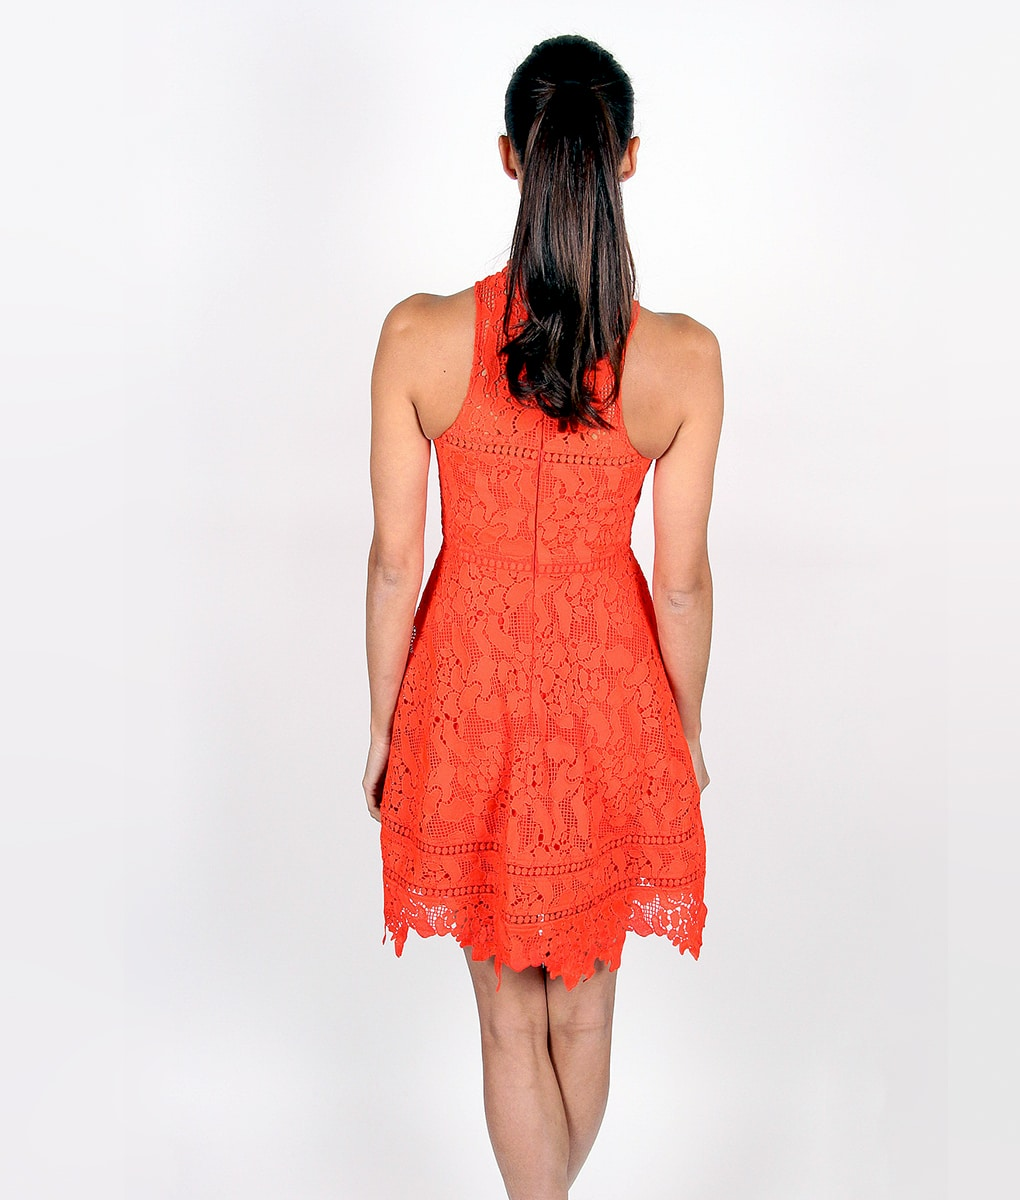 Alila-Tomatoe-Red-Lace-Crochet-Dress-by-Lumier-by-Bariano-back